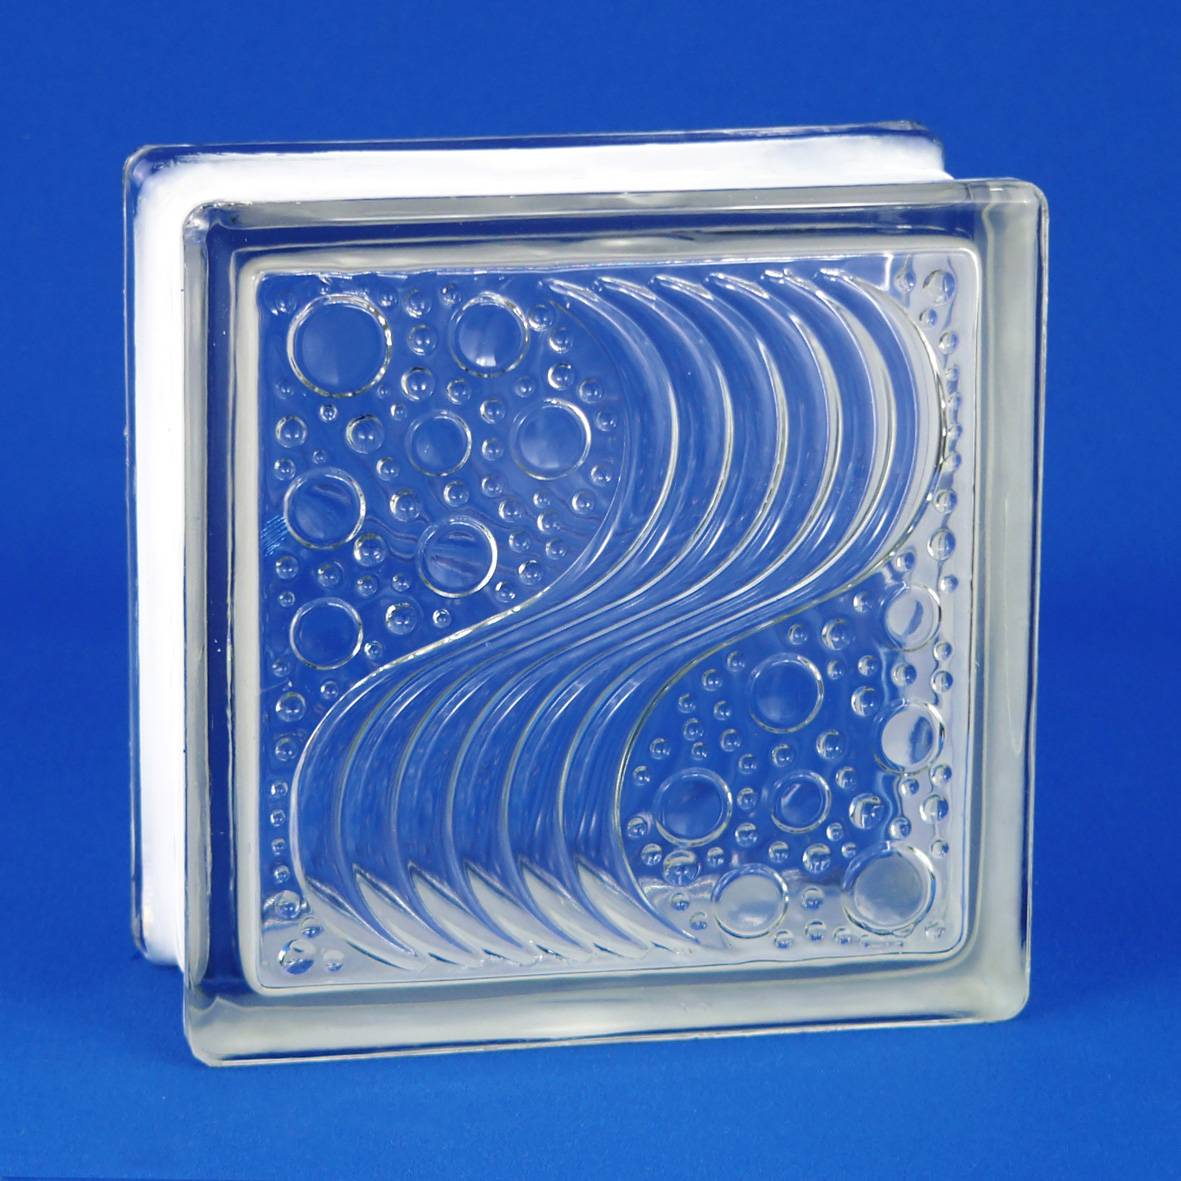 Linuo Glass Blocks Factory Jinan Linuo Glasswork Co